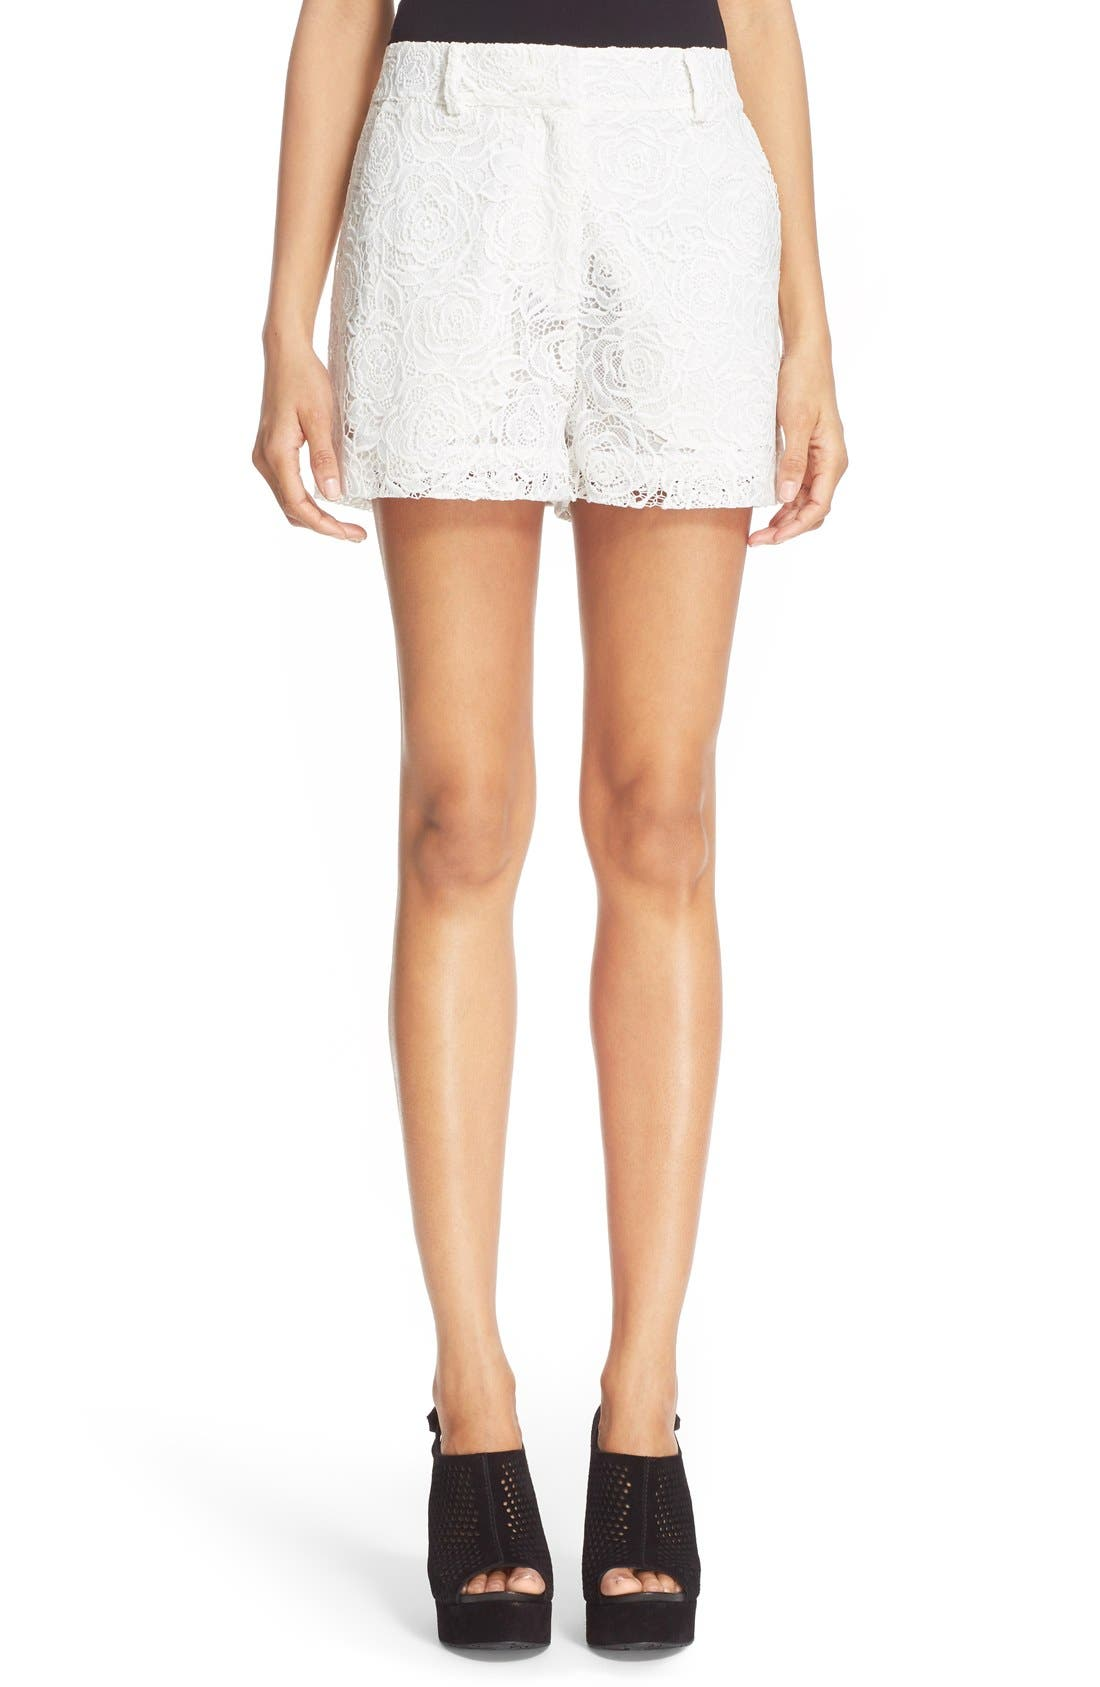 Alternate Image 1 Selected - McQ Alexander McQueen Lace Shorts